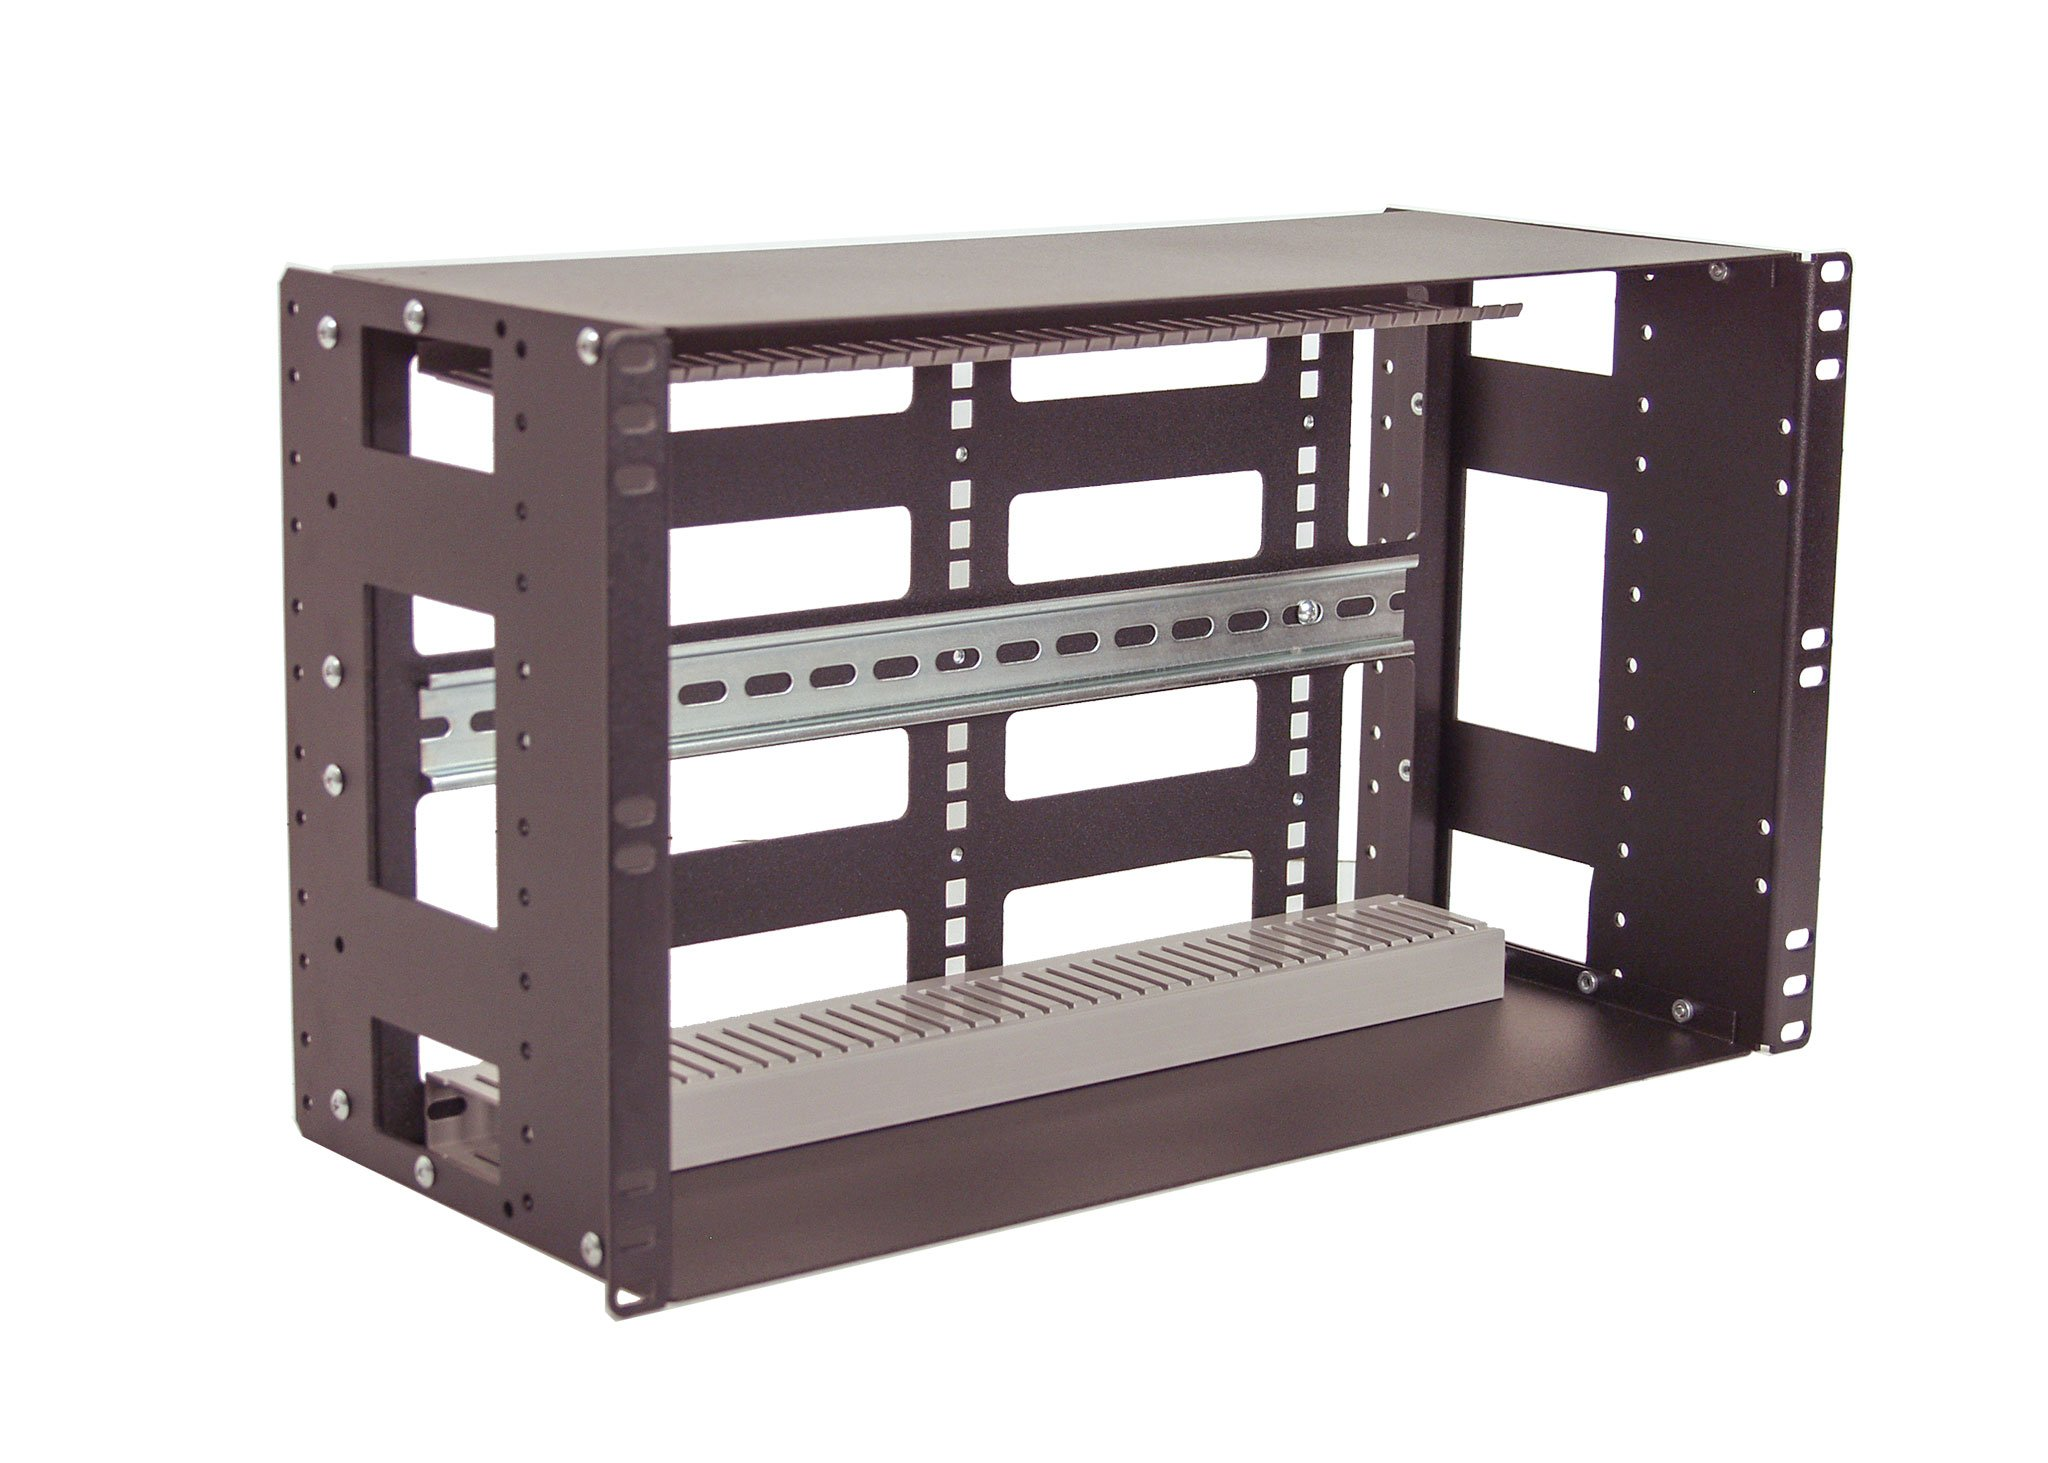 IRP208DB-6U Fully Enclosed Rackmount 6U Compact 8'' Deep Industrial Din Rail Panel for 19'' 2-Post relay rack or 4-Post Rack Cabinet